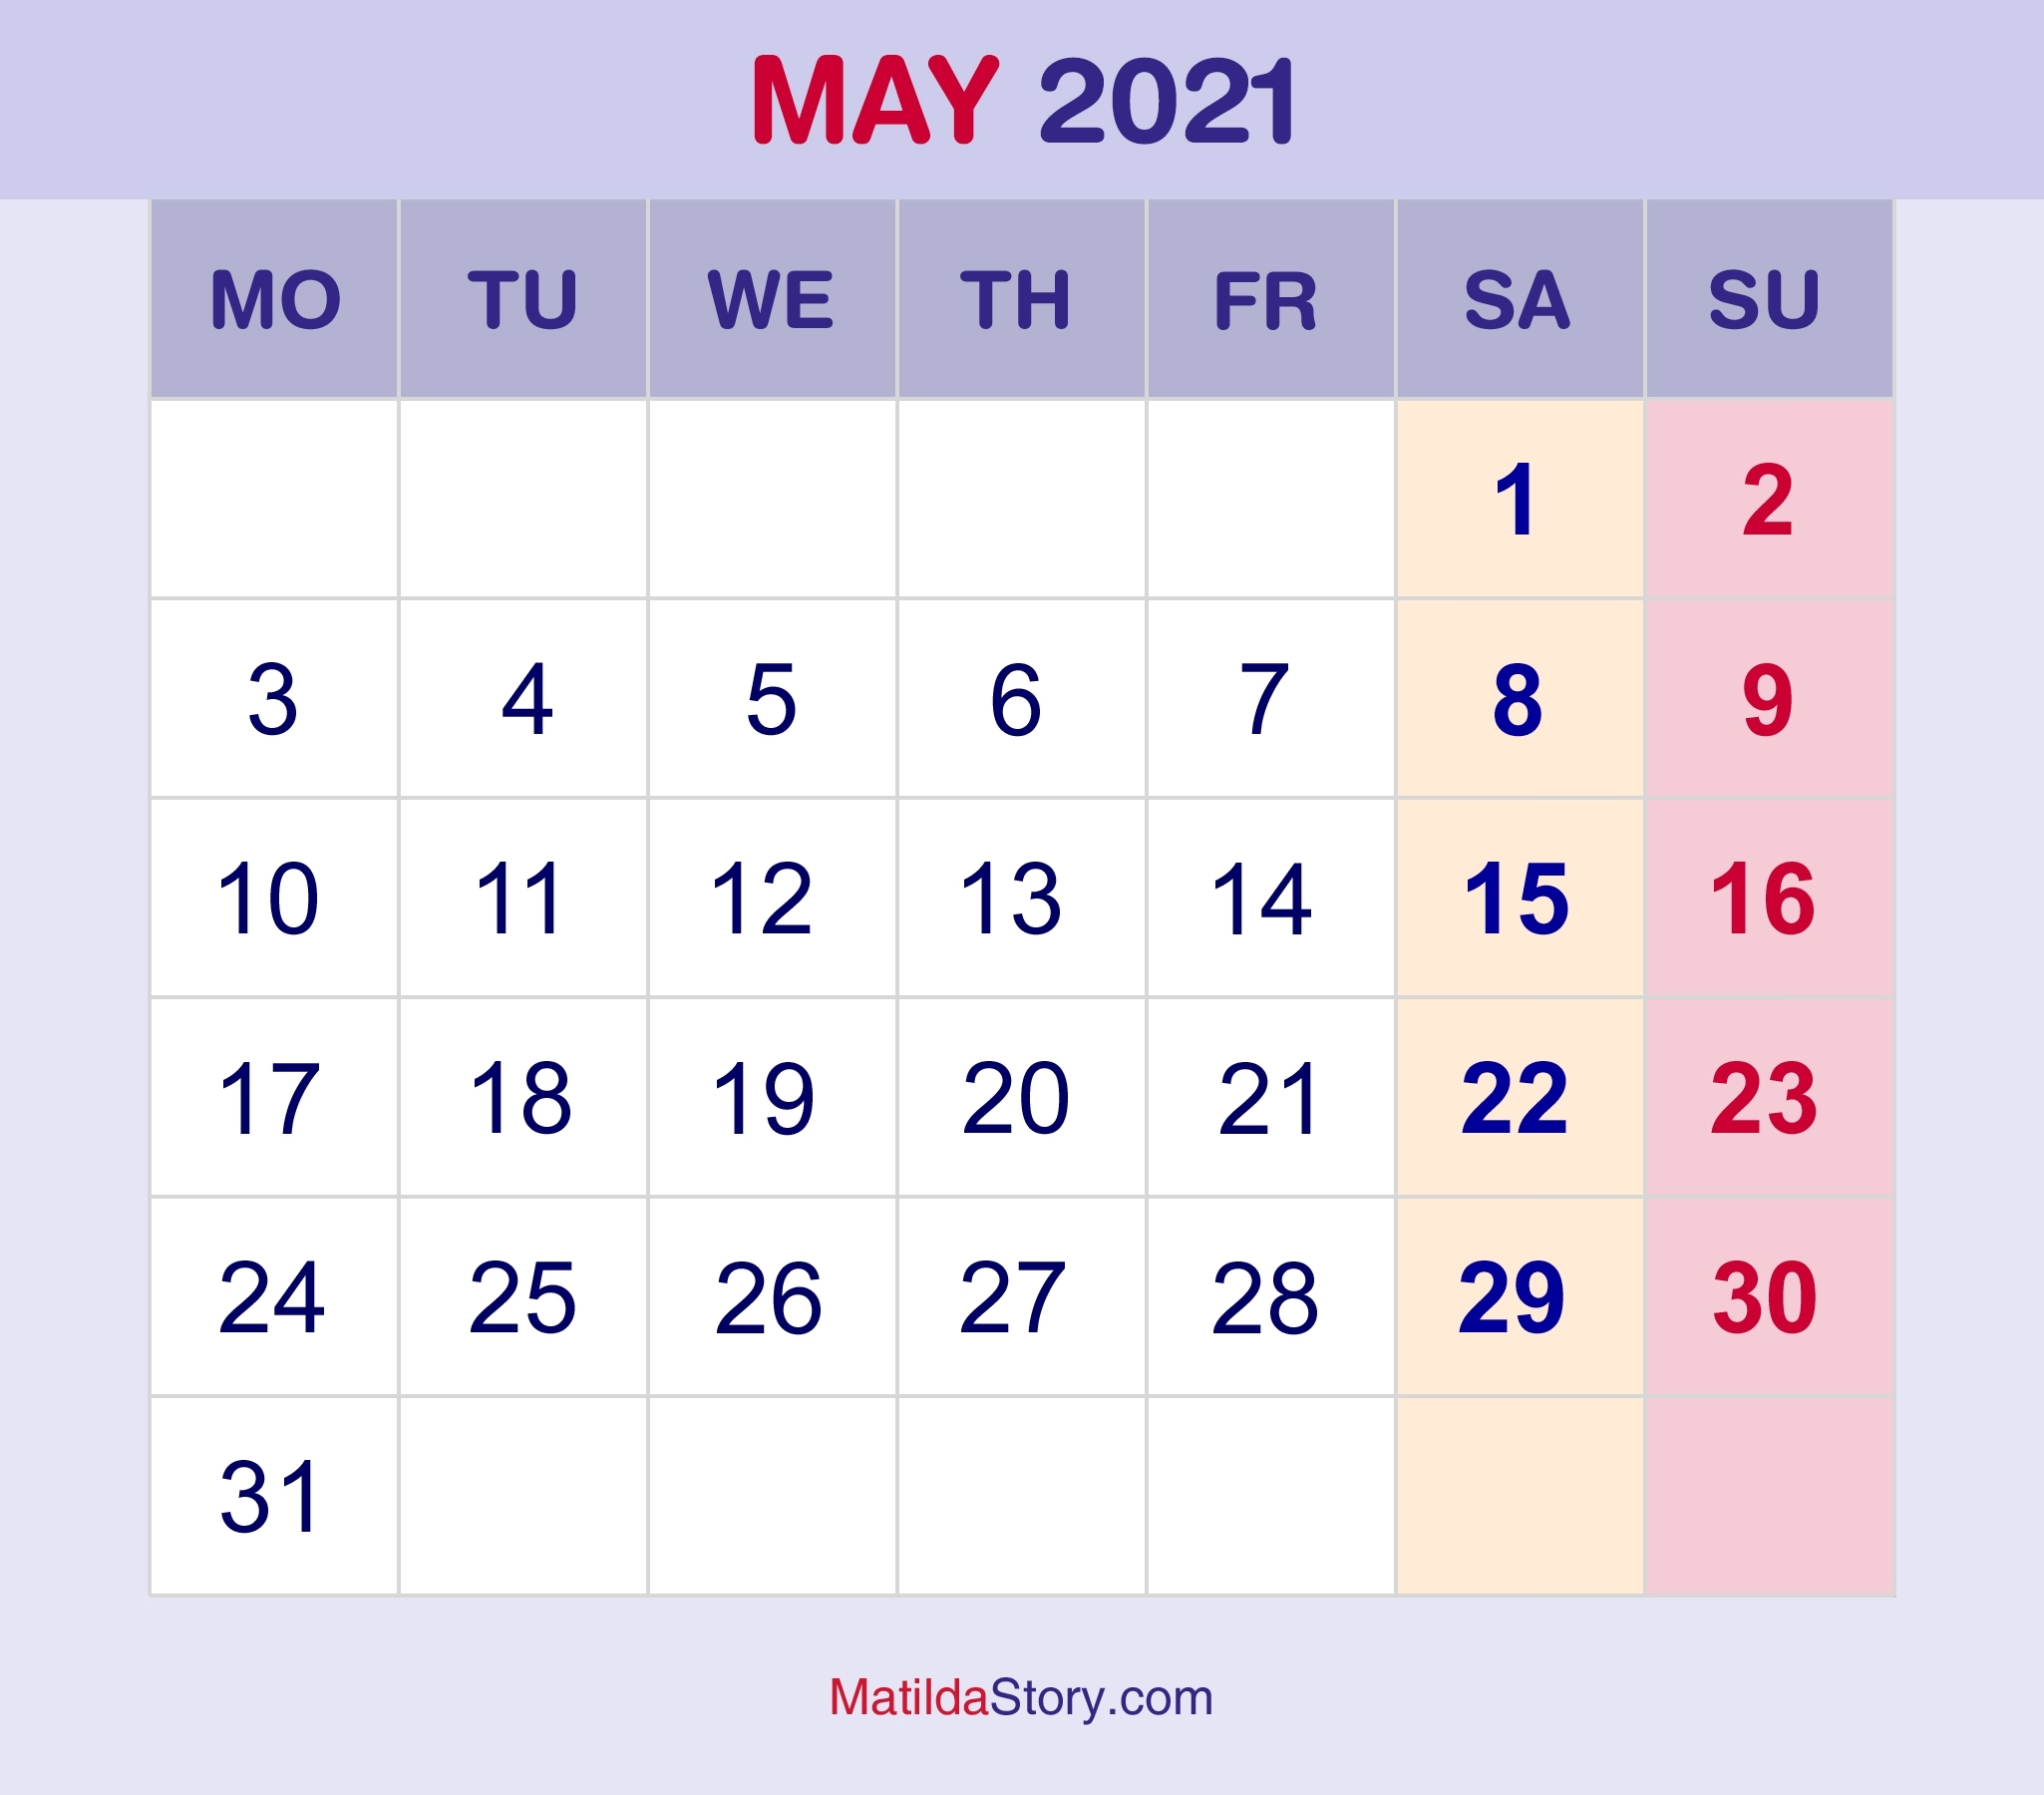 May 2021 Monthly Calendar, Monthly Planner, Printable Free - Monday Start - Matildastory